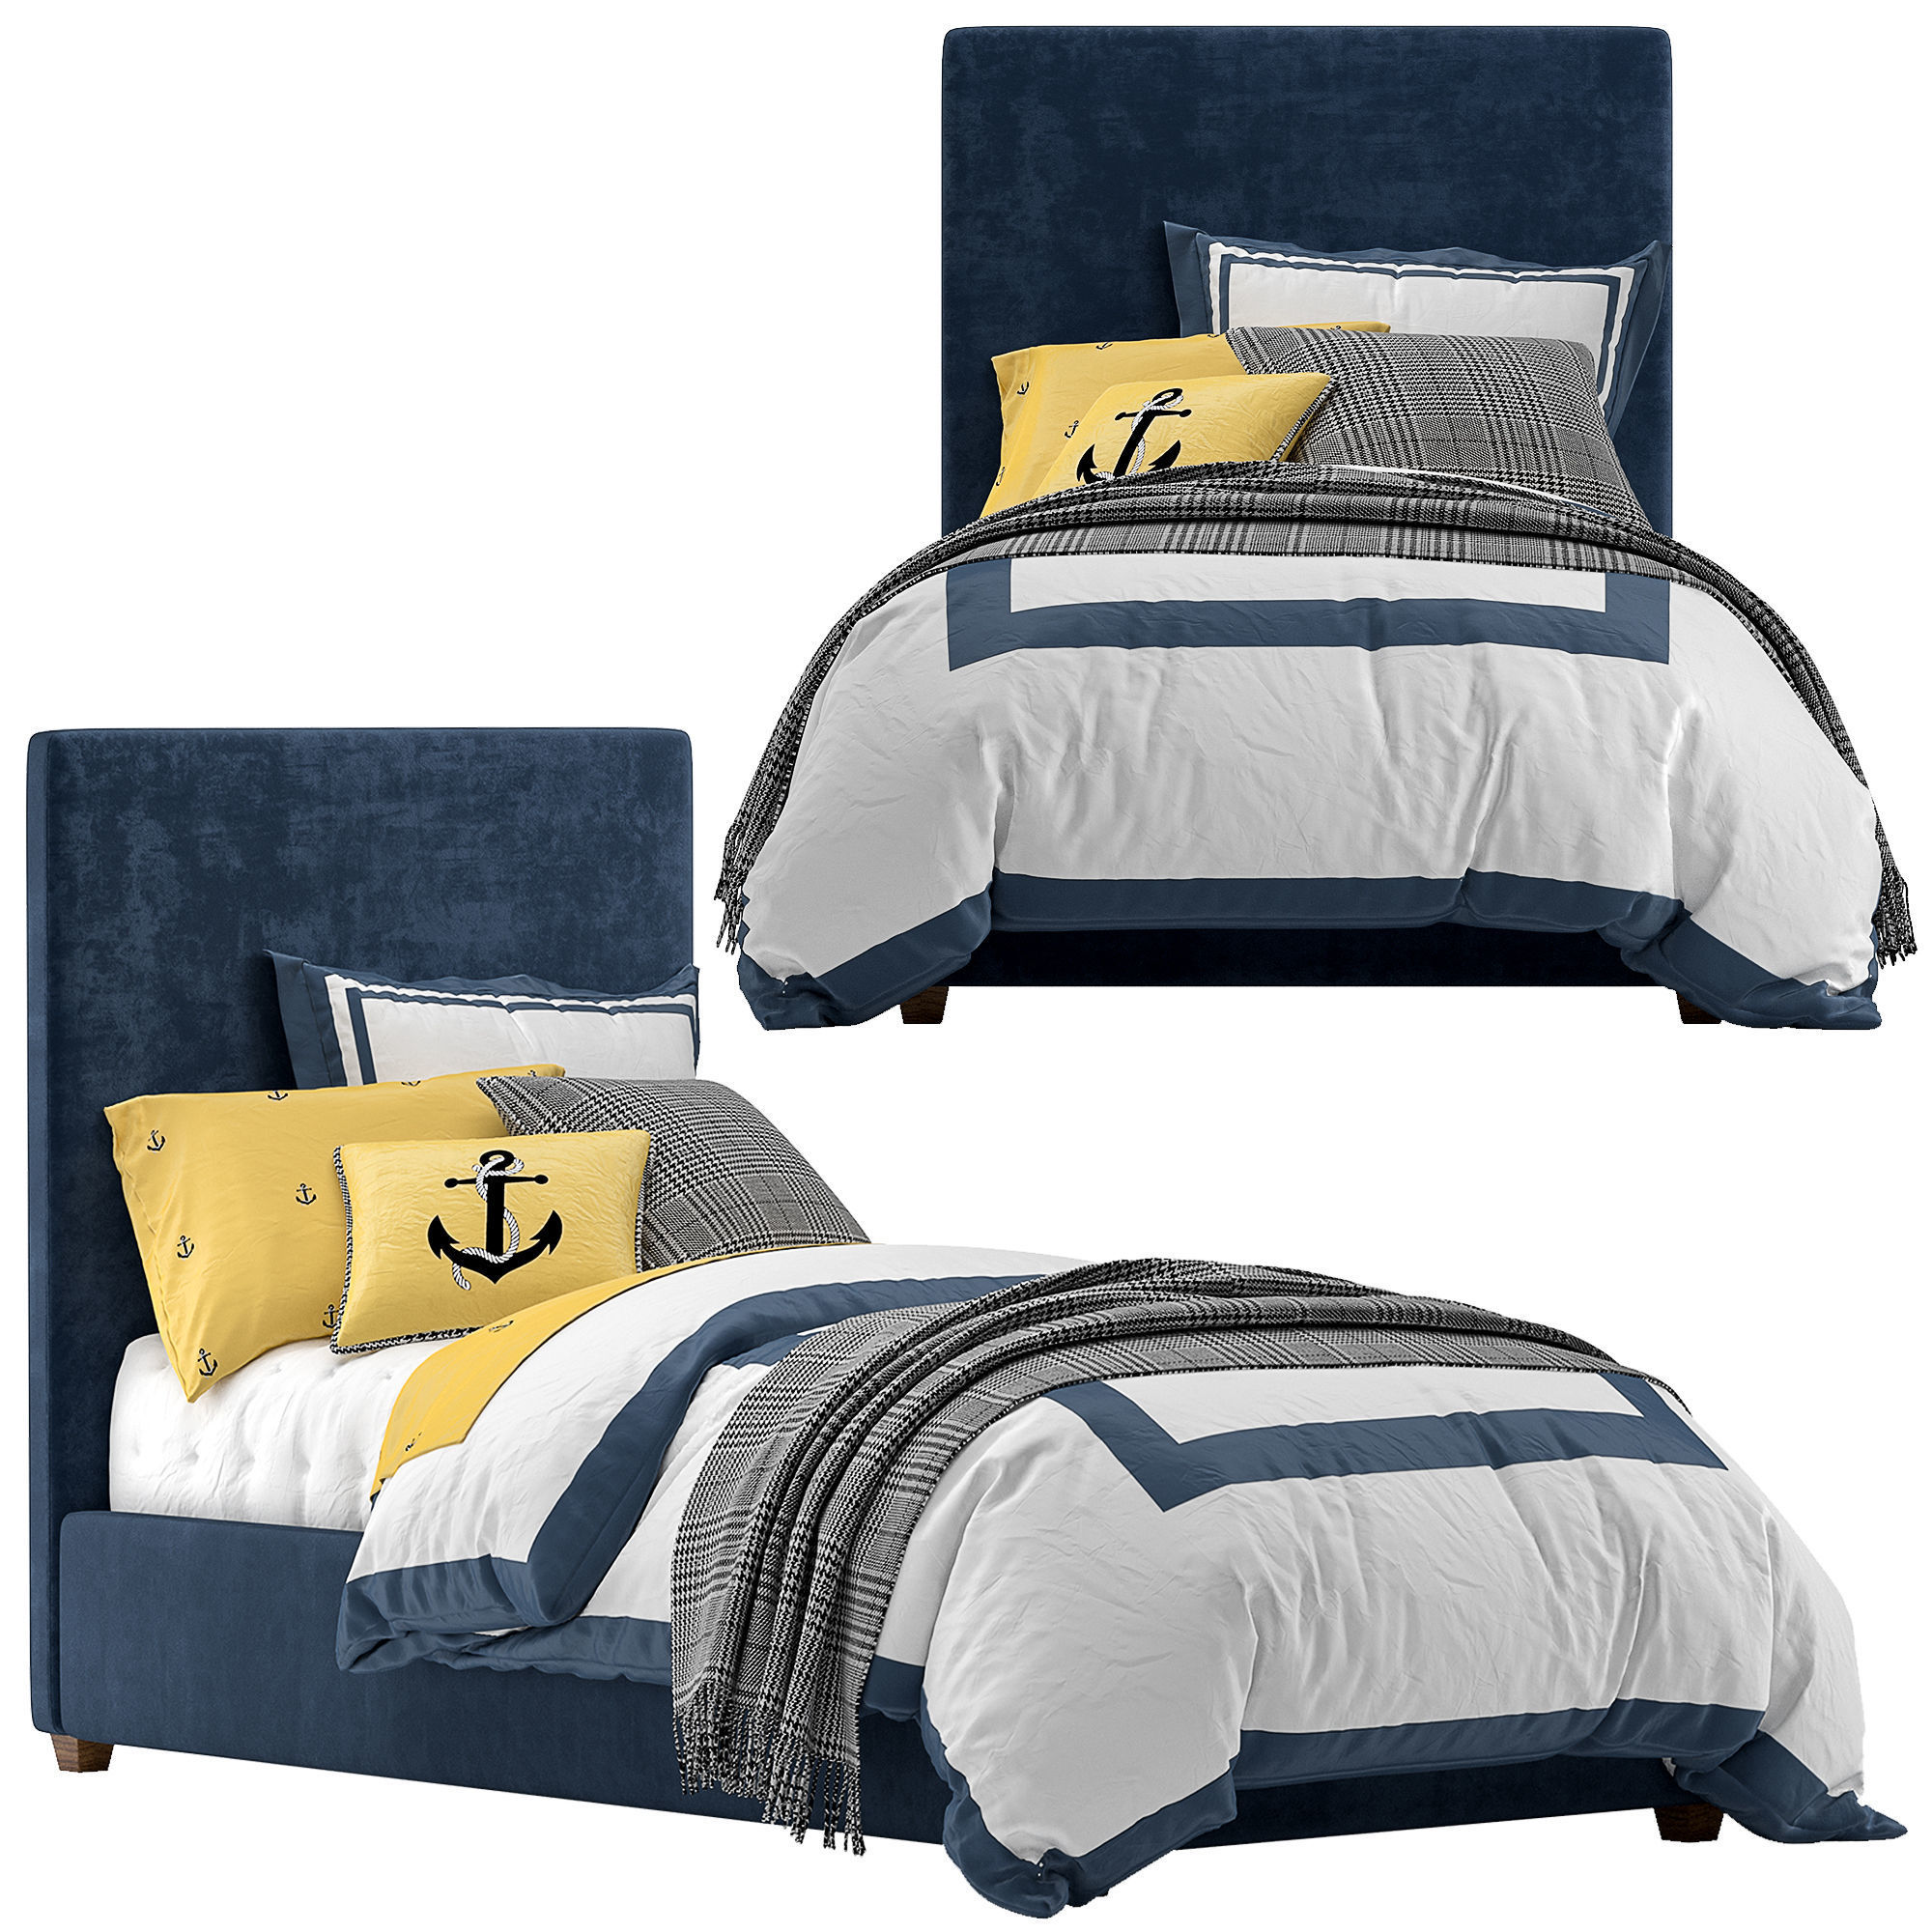 Raleigh Upholstered Square Bed  - Headboard